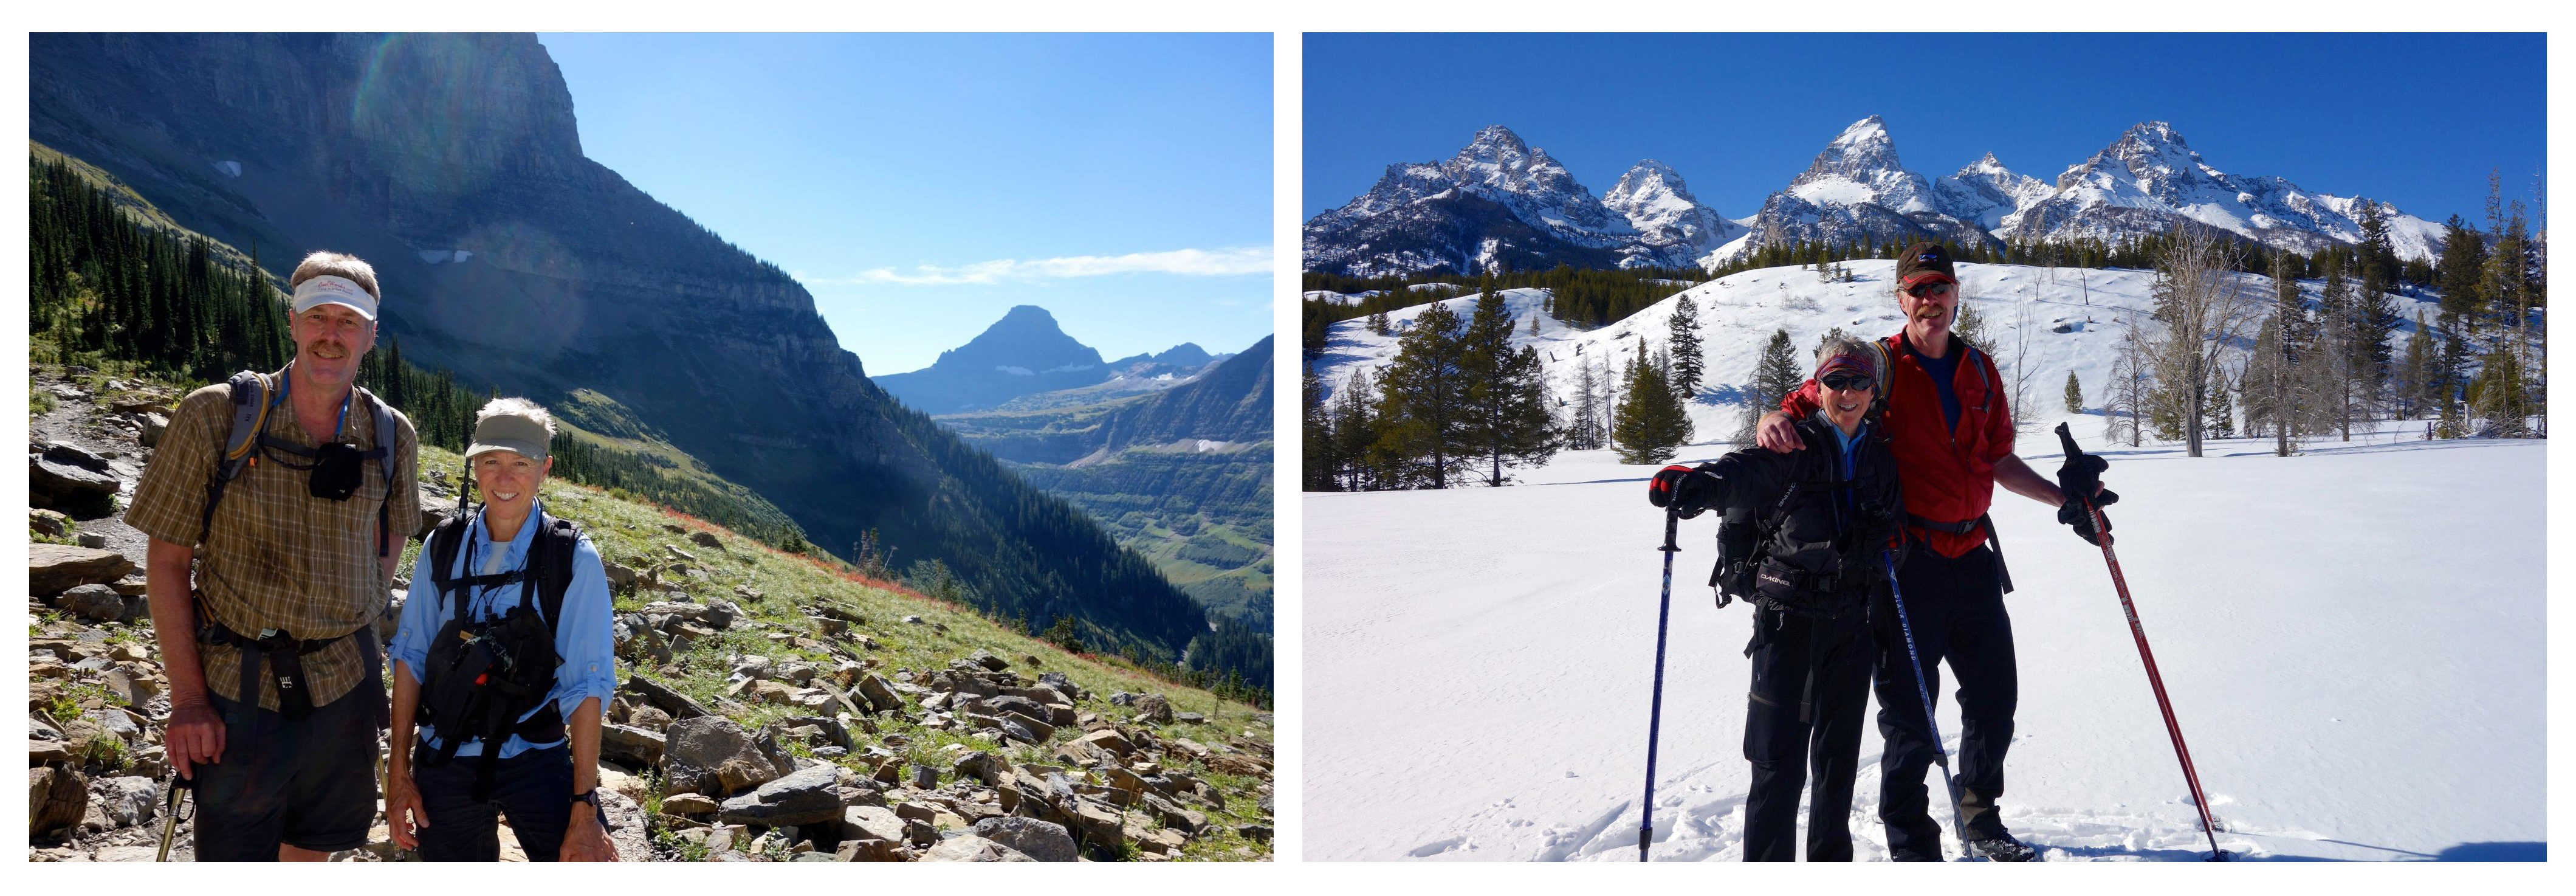 Hiking in Glacier, and Skiing in the Tetons